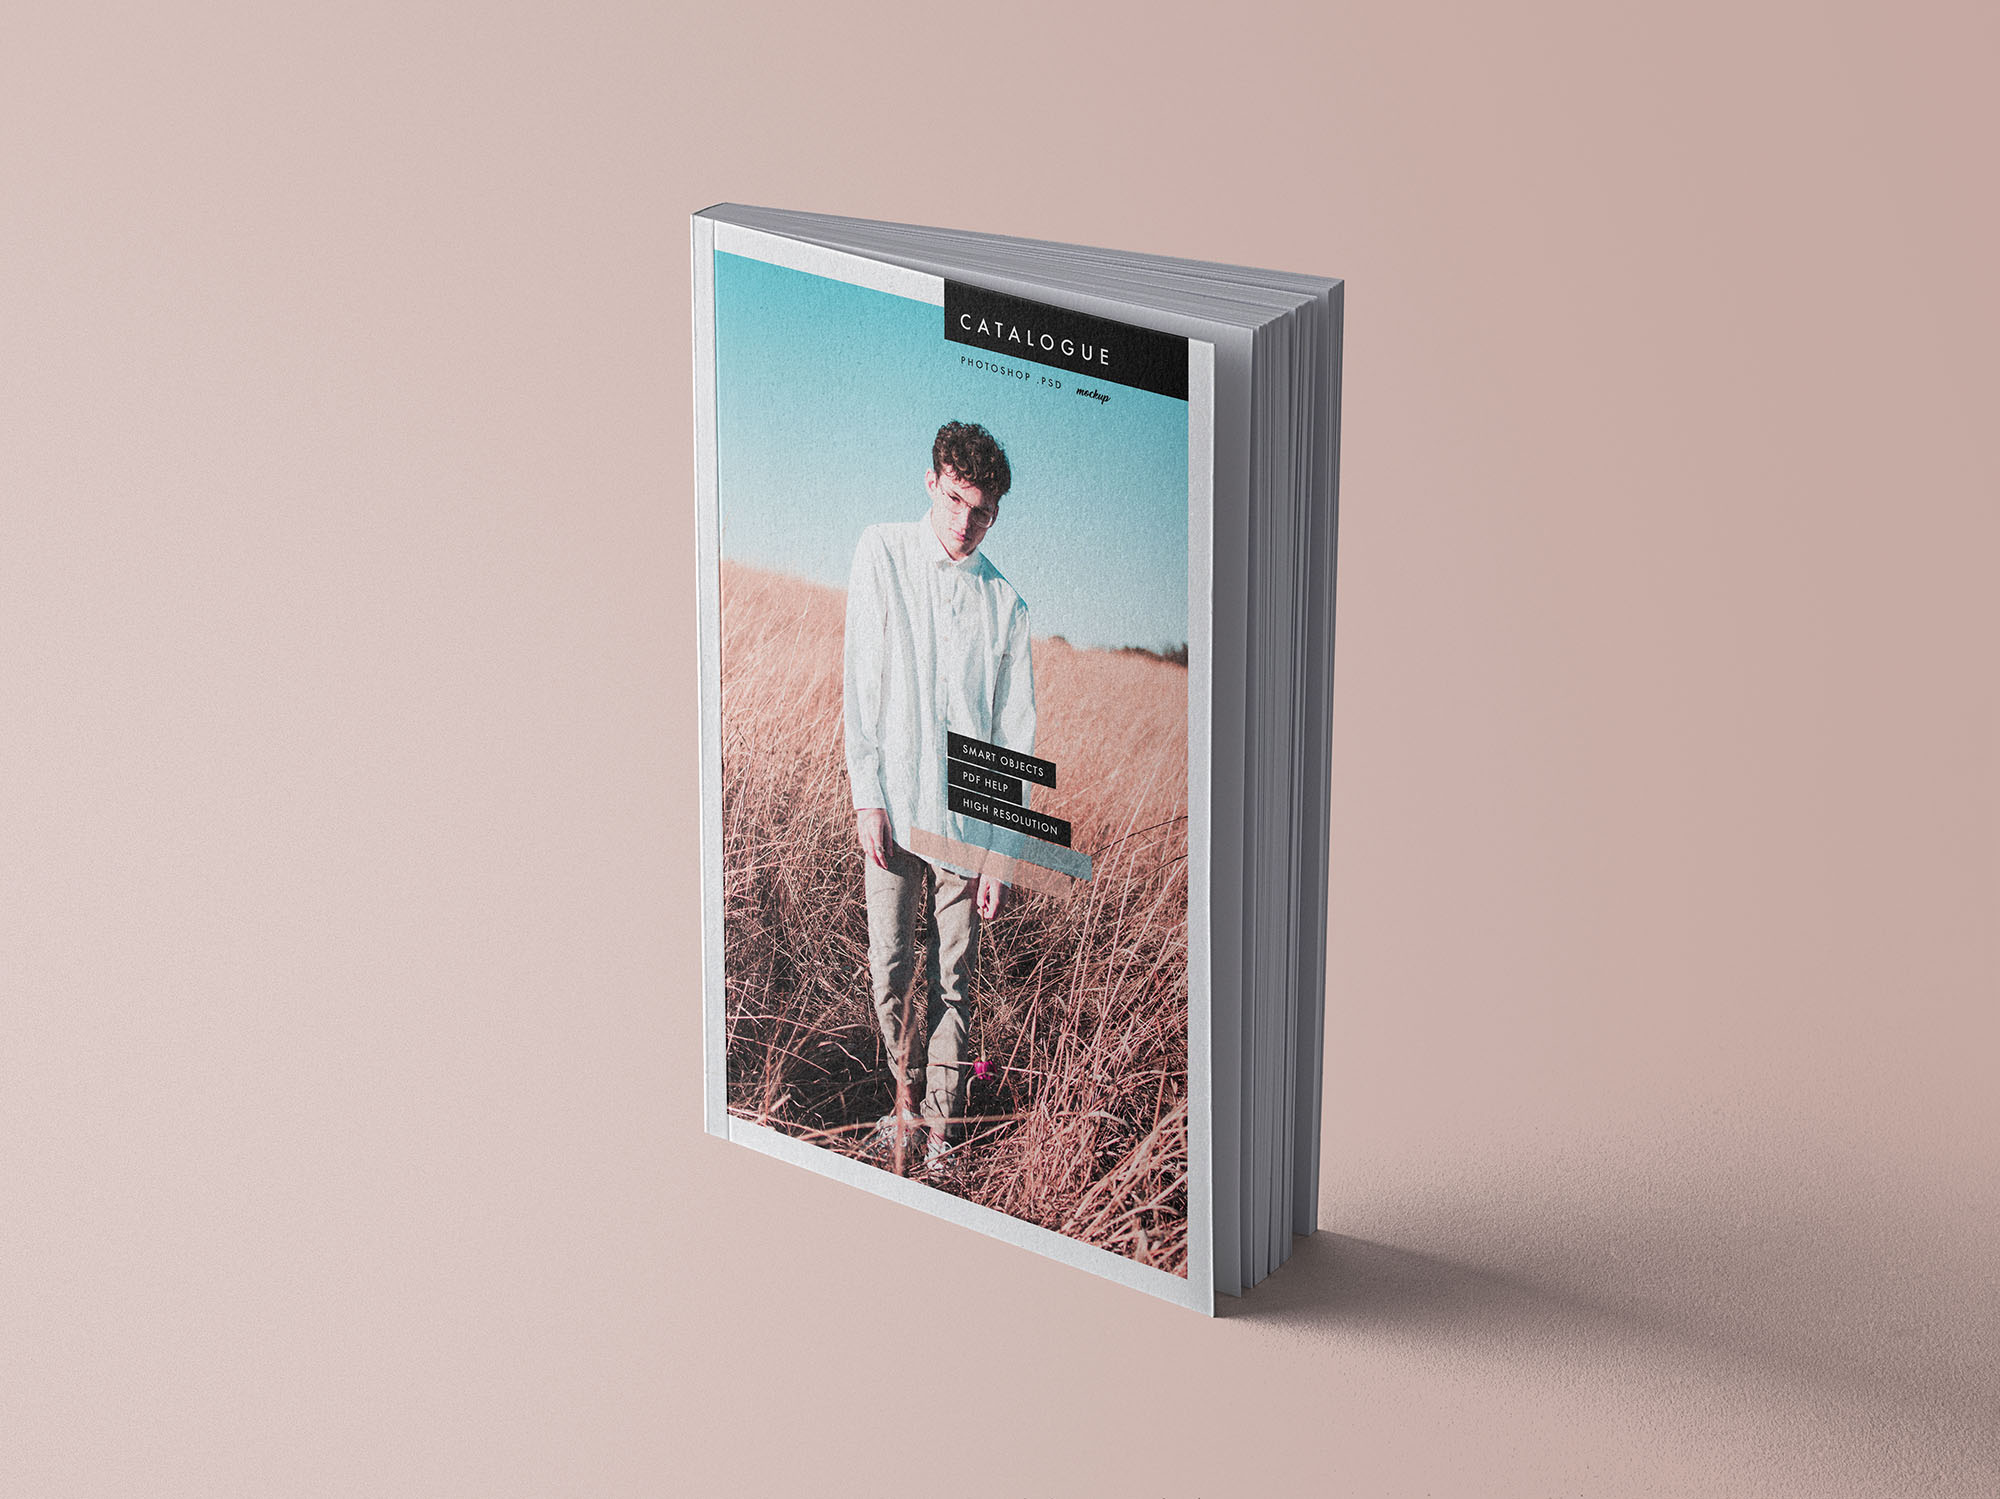 Catalogue Mockup